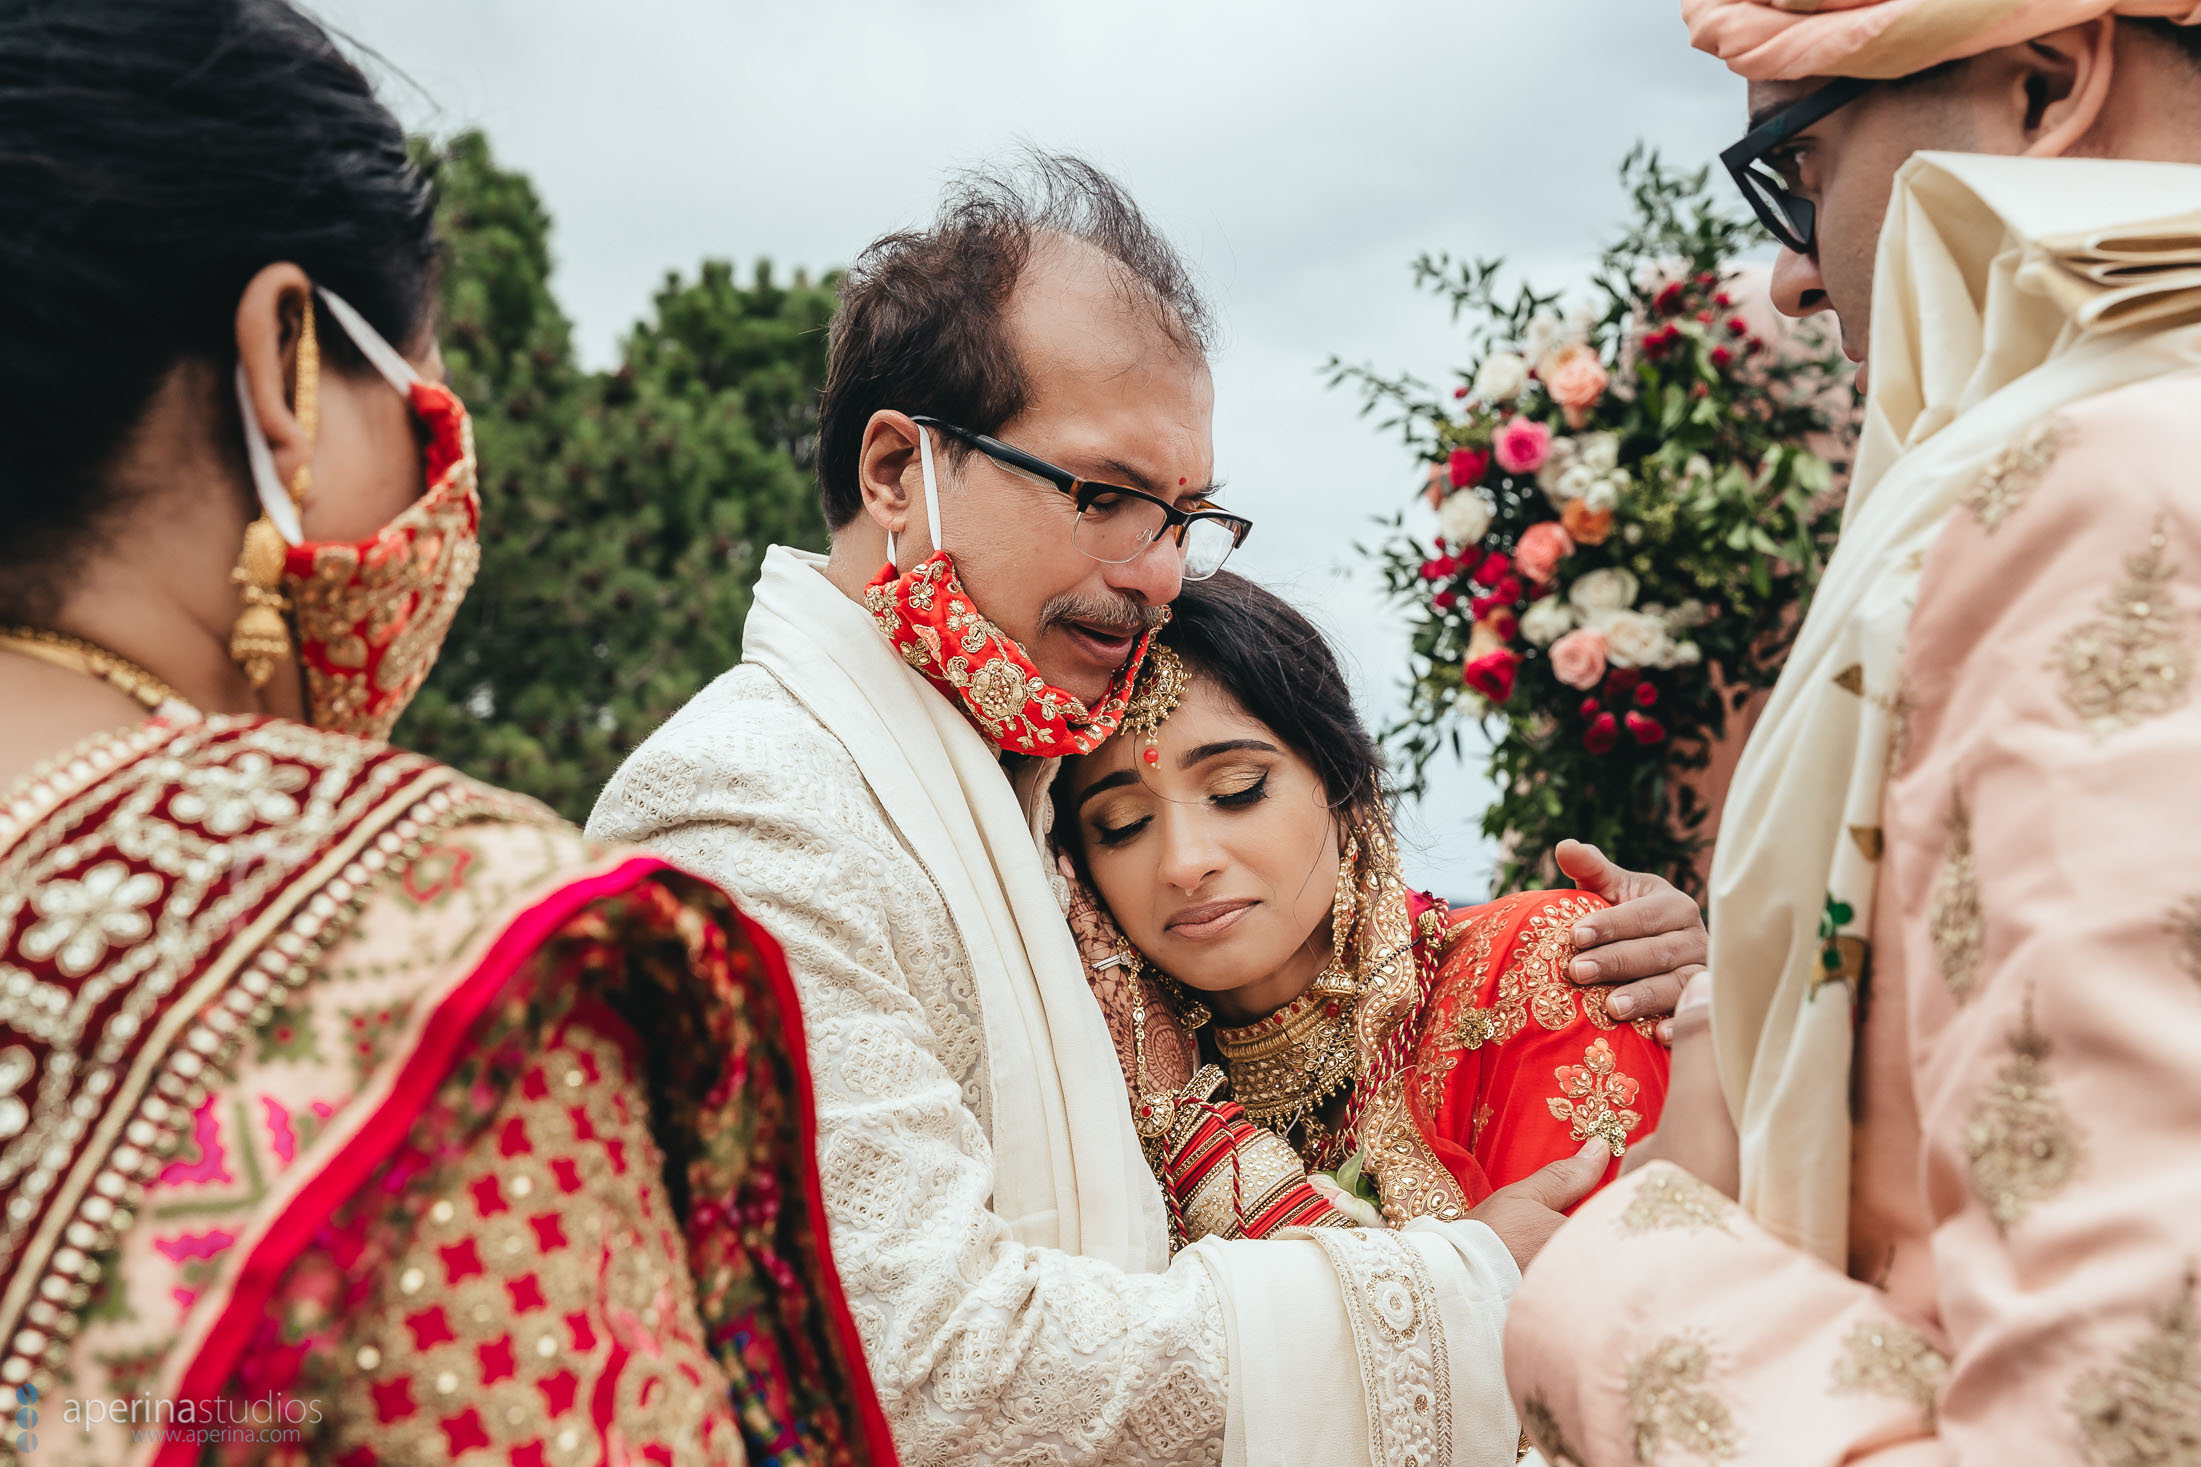 Denver Indian Wedding Photography by Aperina Studios - beautiful Hindu ceremony moments with Red, white and pink color scheme.